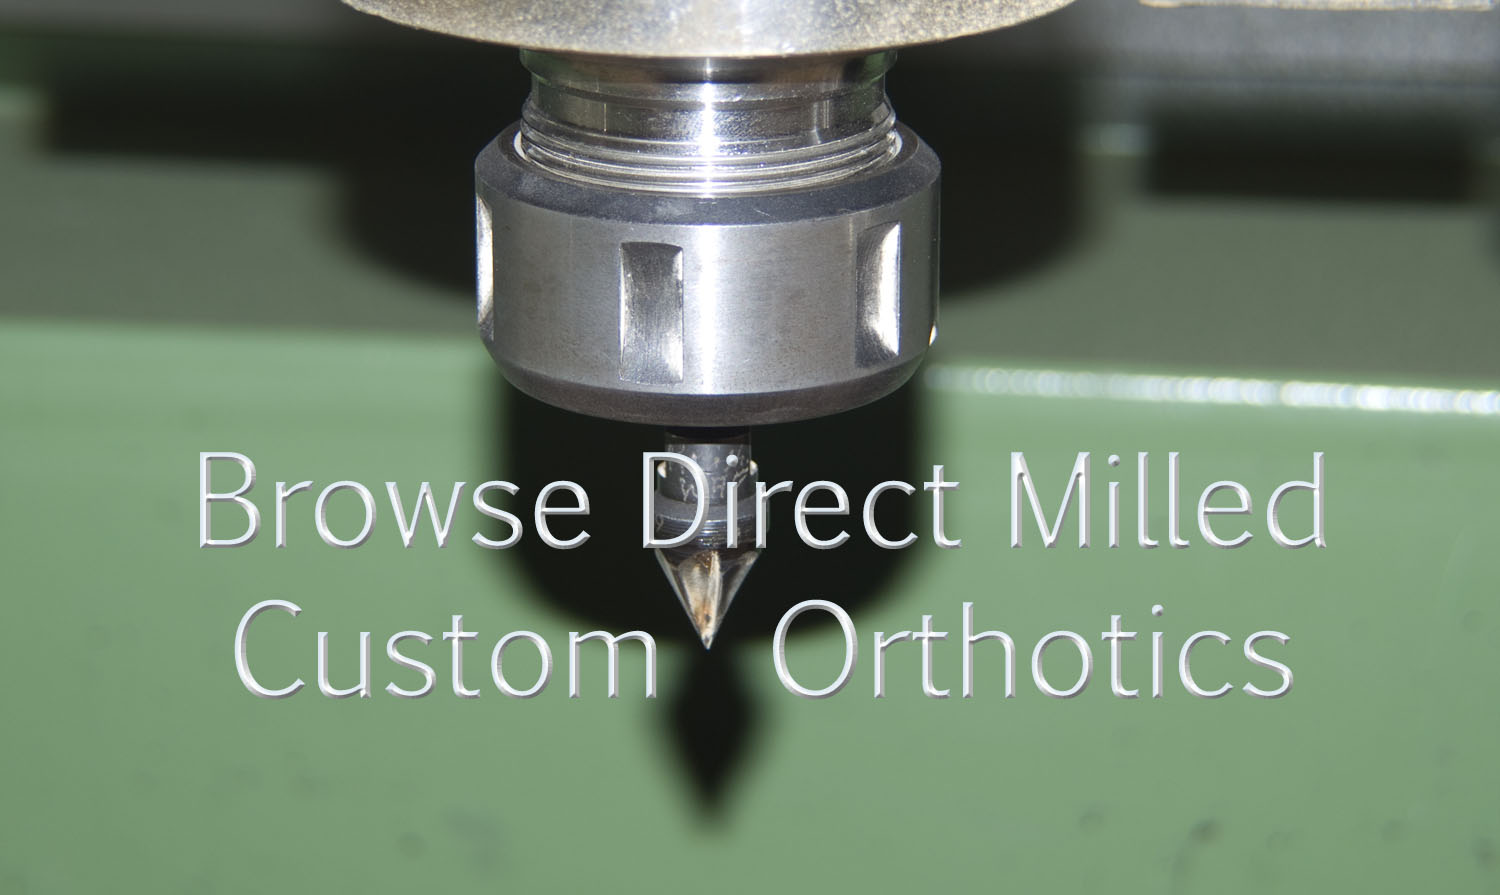 Direct Milled Custom Orthotics